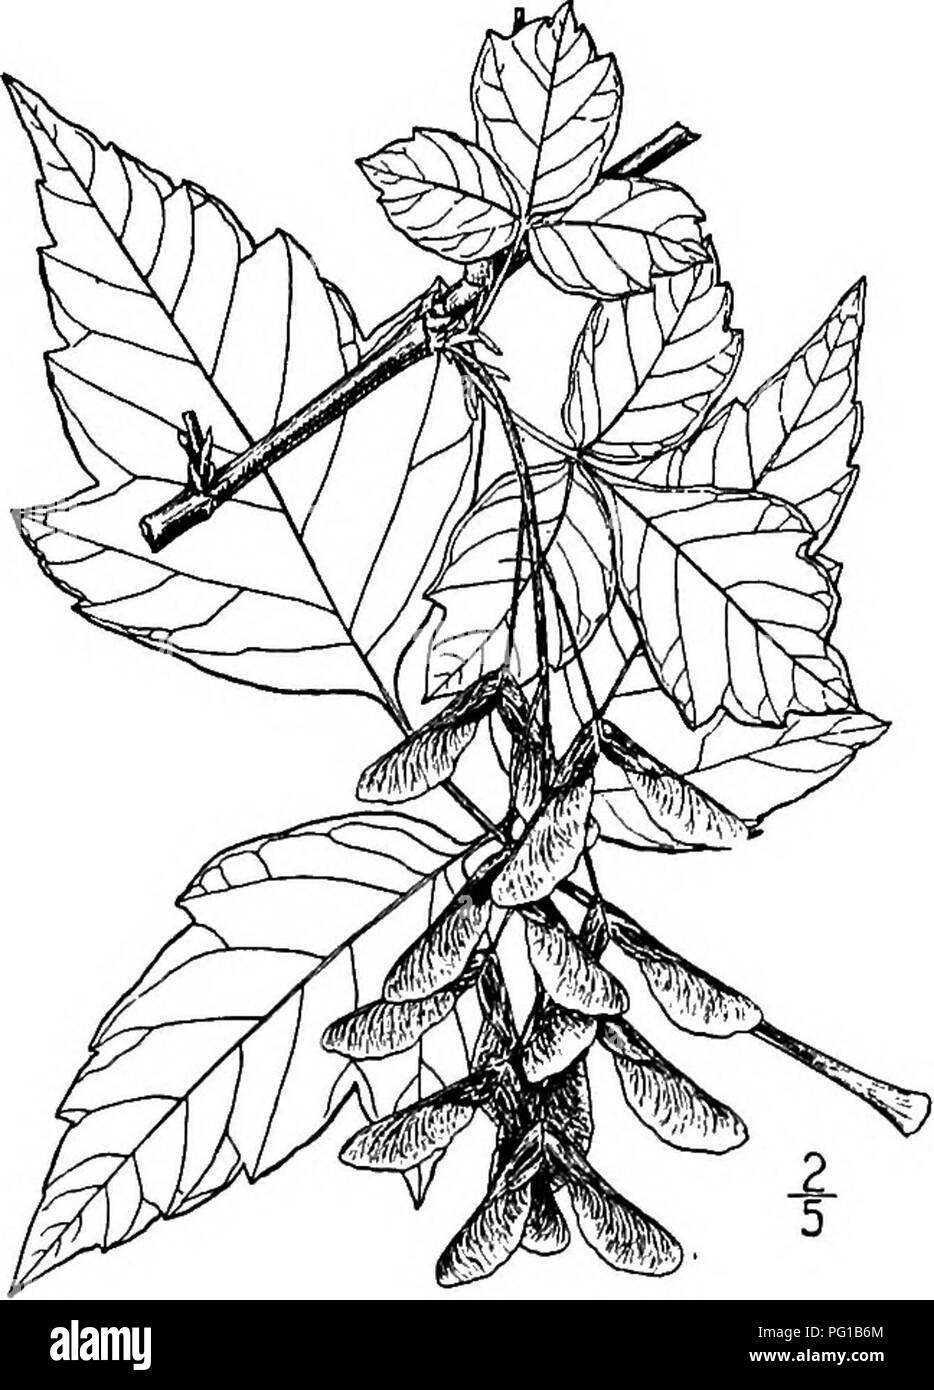 . North American trees : being descriptions and illustrations of the trees growing independently of cultivation in North America, north of Mexico and the West Indies . Trees. Western Ash-Leaved Maple 655 in outline, or the terminal one nearly round in outline, pointed, very coarsely toothed or sometimes 3-lobed, densely hairy on the under side even when nearly or quite mature, and more or less hairy on the upper surface. The flowers appear with the leaves, and resemble those of Acer Negundo, but the pedicels, calyx, ovary, and styles are densely woolly. The samaras are about 3 cm. long, little - Stock Image